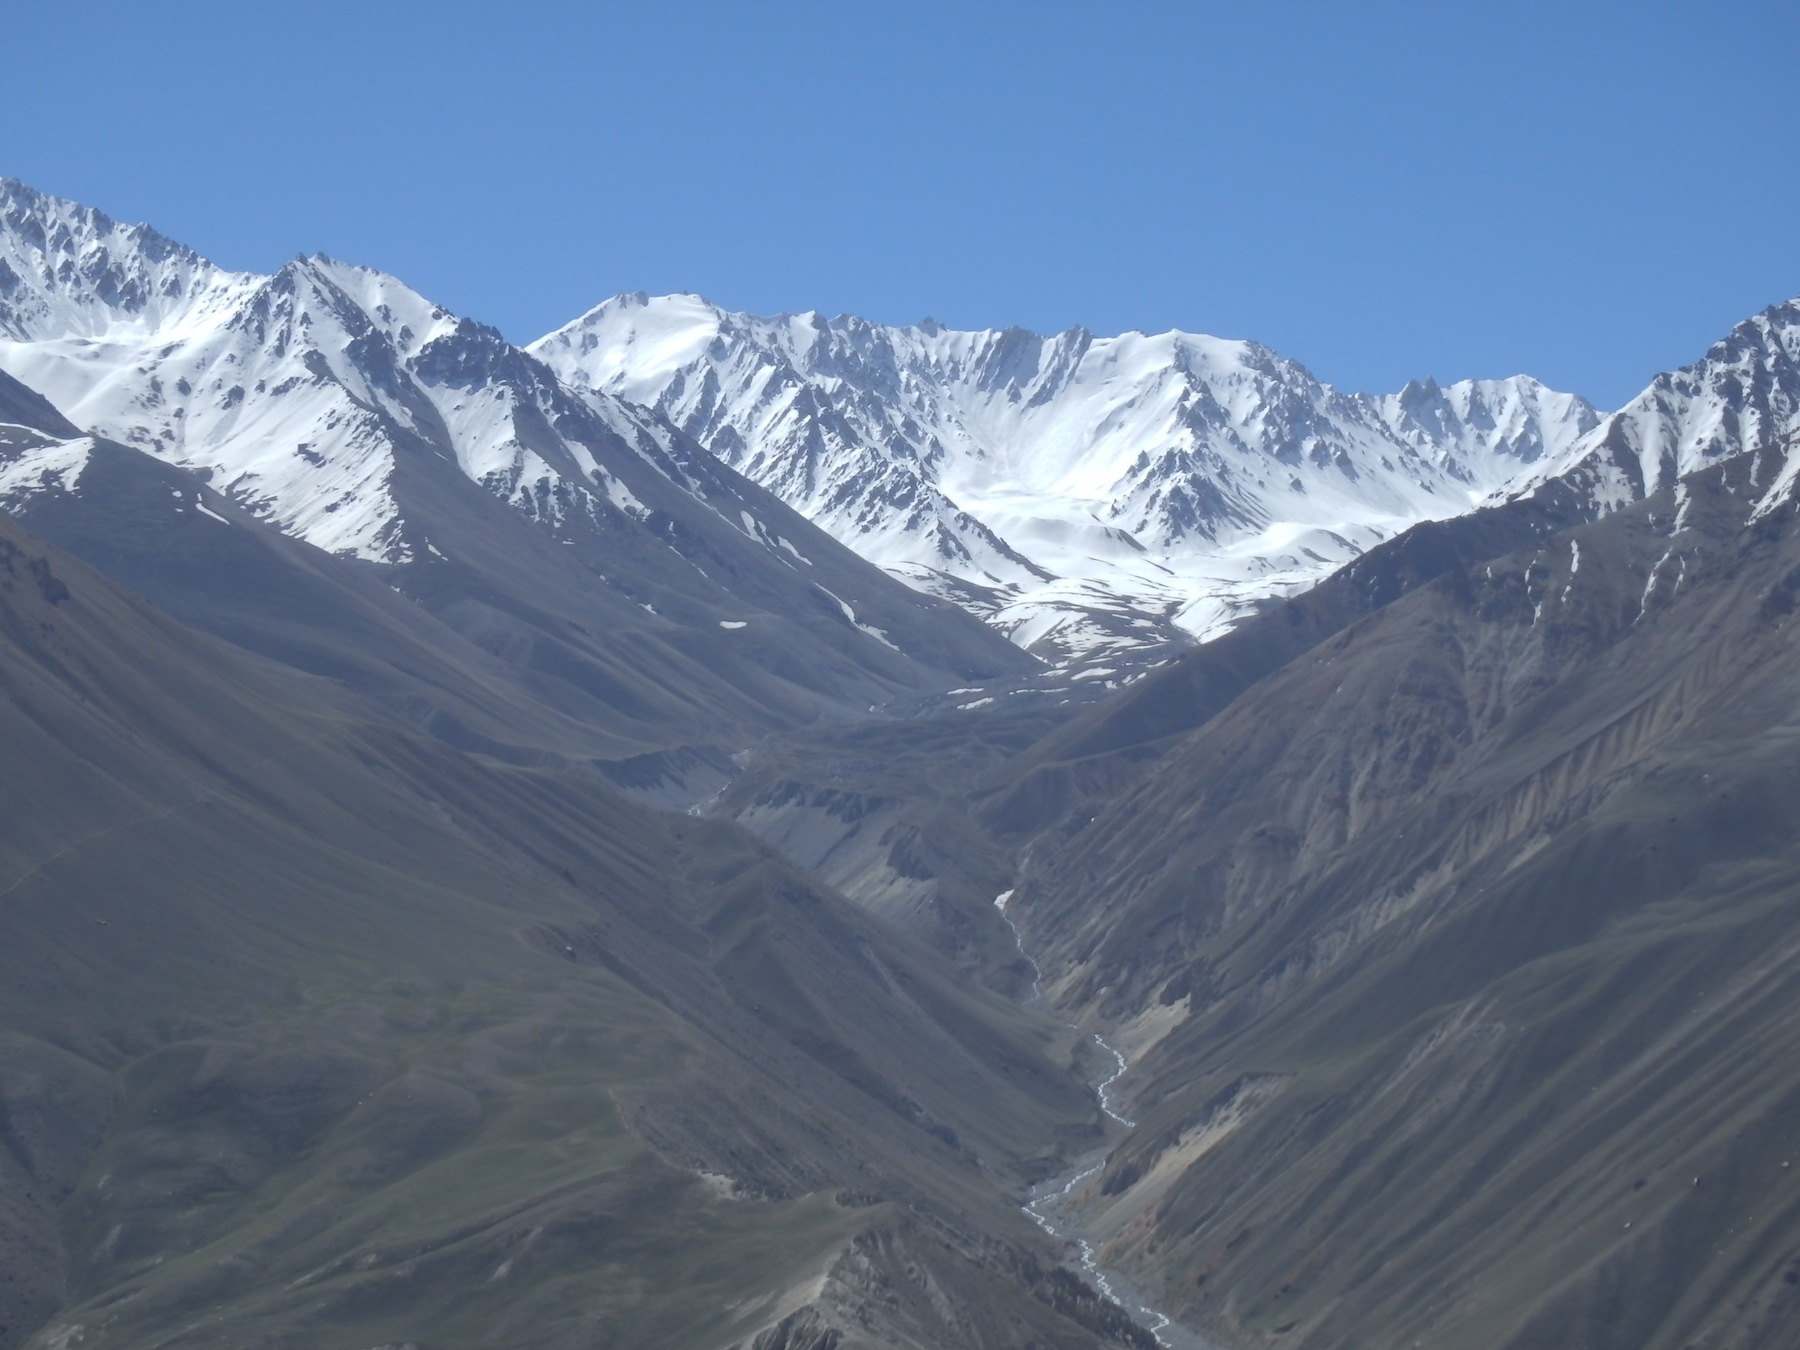 View of the Big Pamir mountain range from Tajikistan (Tajikistan - Wakhan)